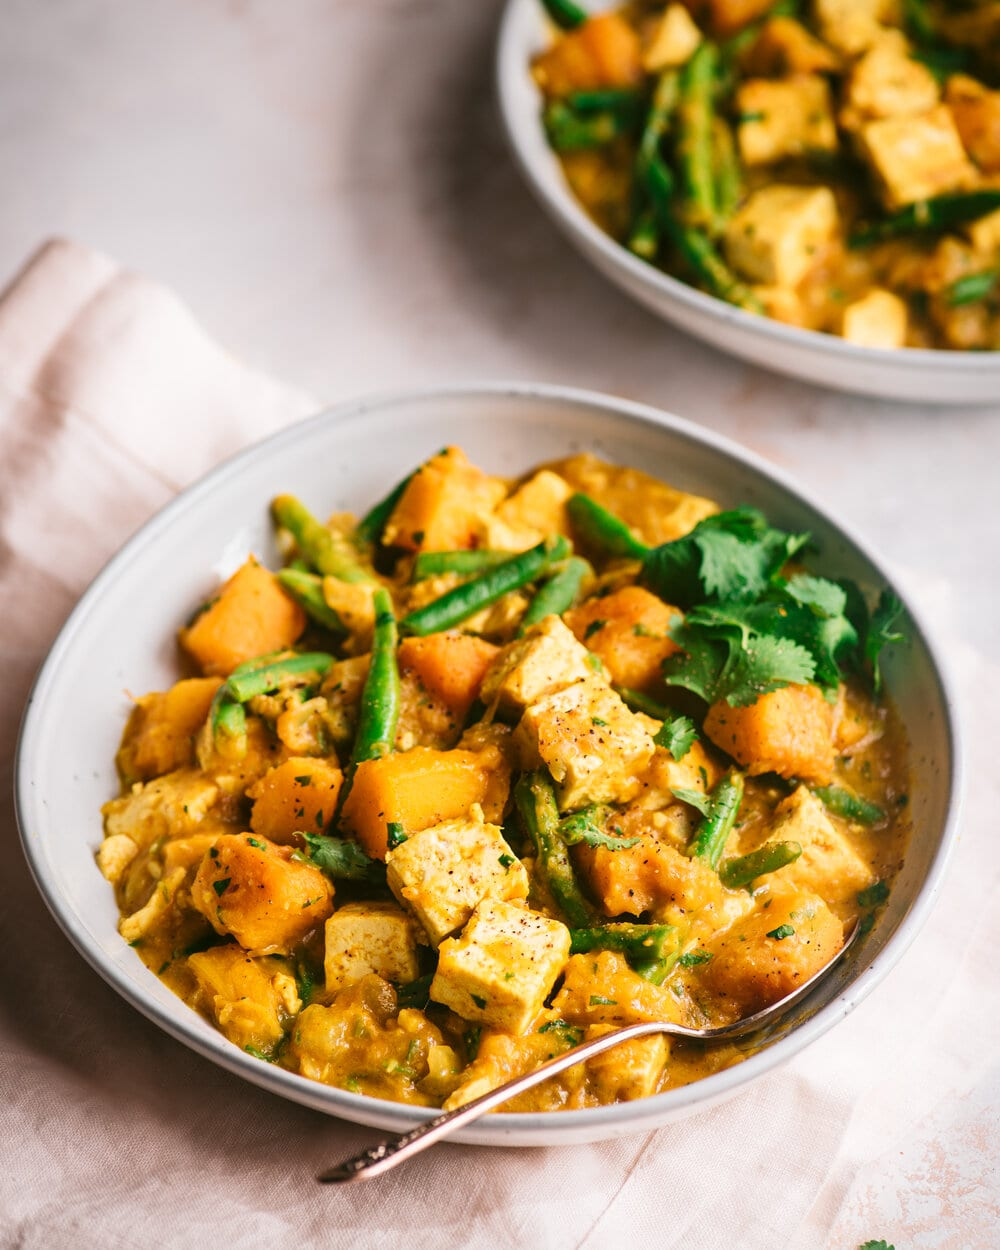 Vegan Pumpkin Curry with Tofu. Indian pumpkin curry with tofu, coconut milk, and green beans.